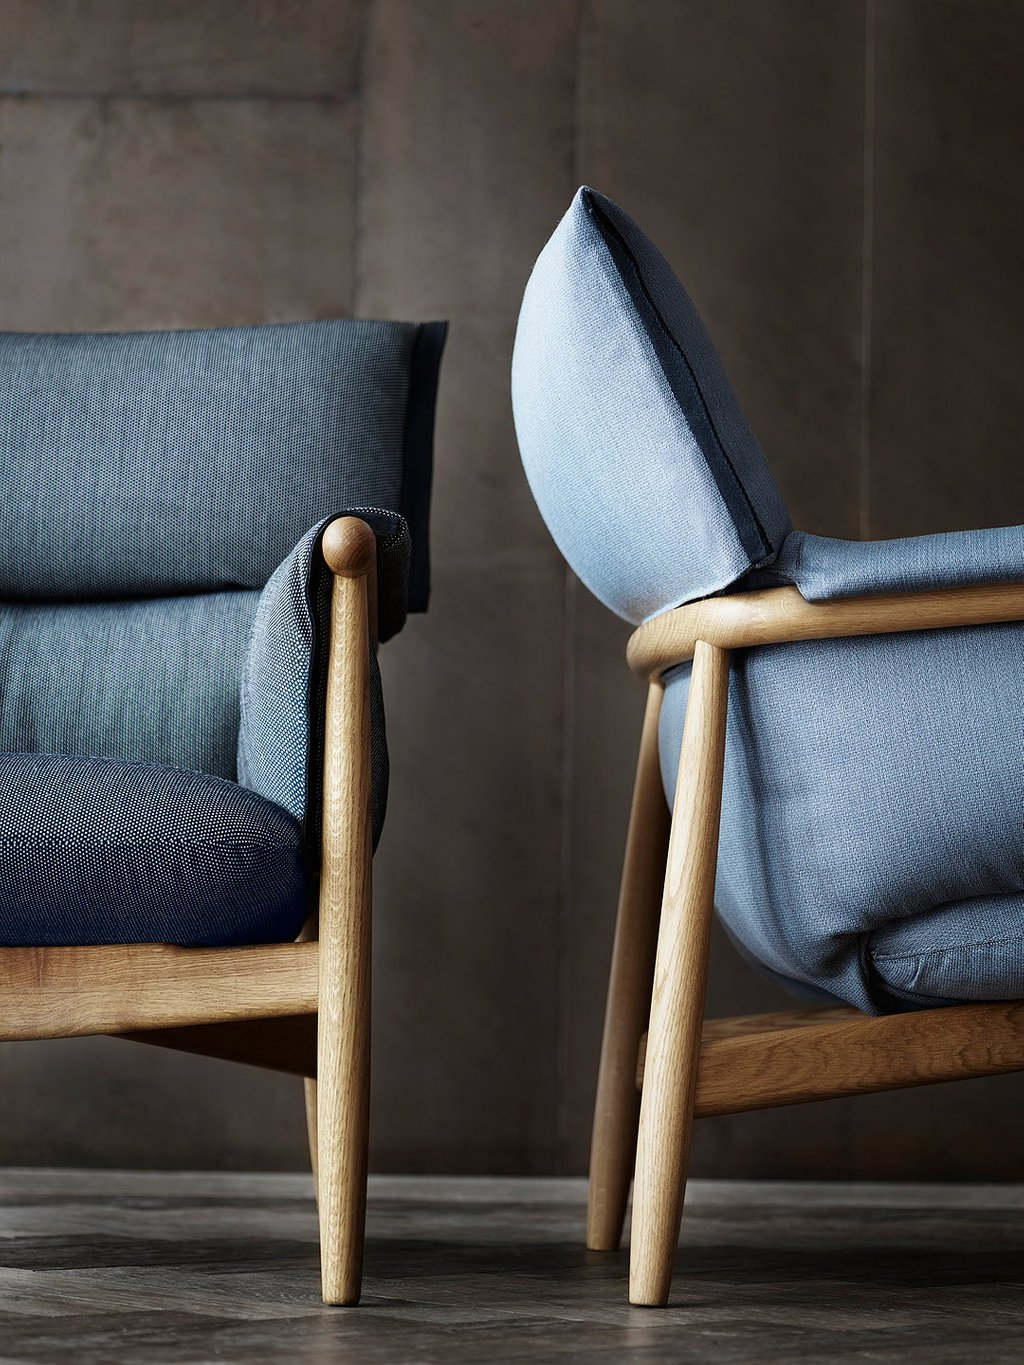 Carl Hansen Son Unveil Embrace Lounge Chair How To Build A Wood Twin Bed Frame